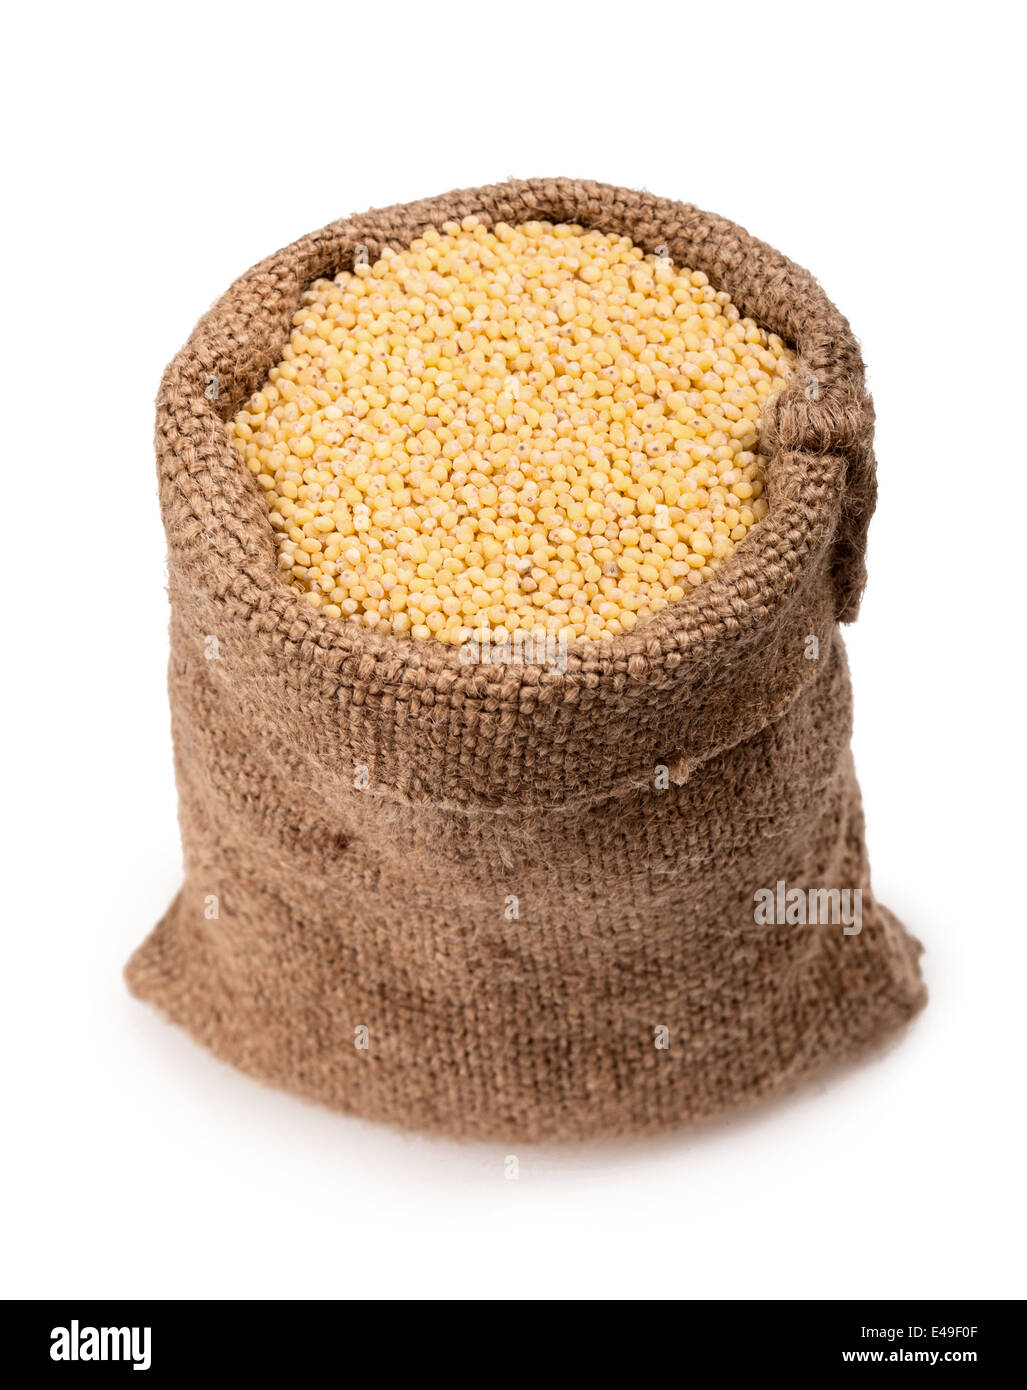 bag of millet on a white background - Stock Image